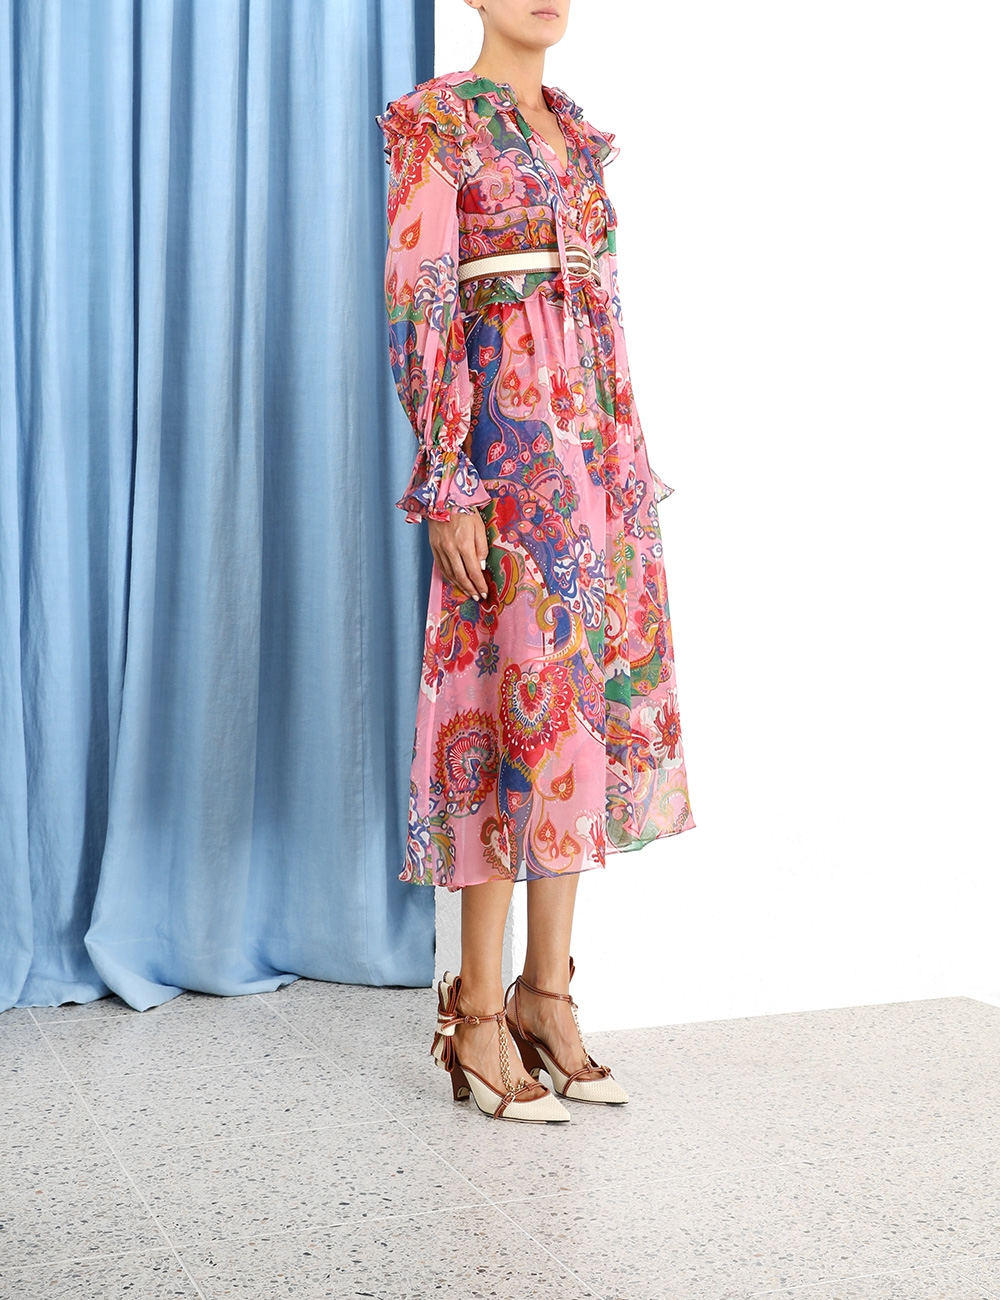 The Lovestruck Chiffon Midi